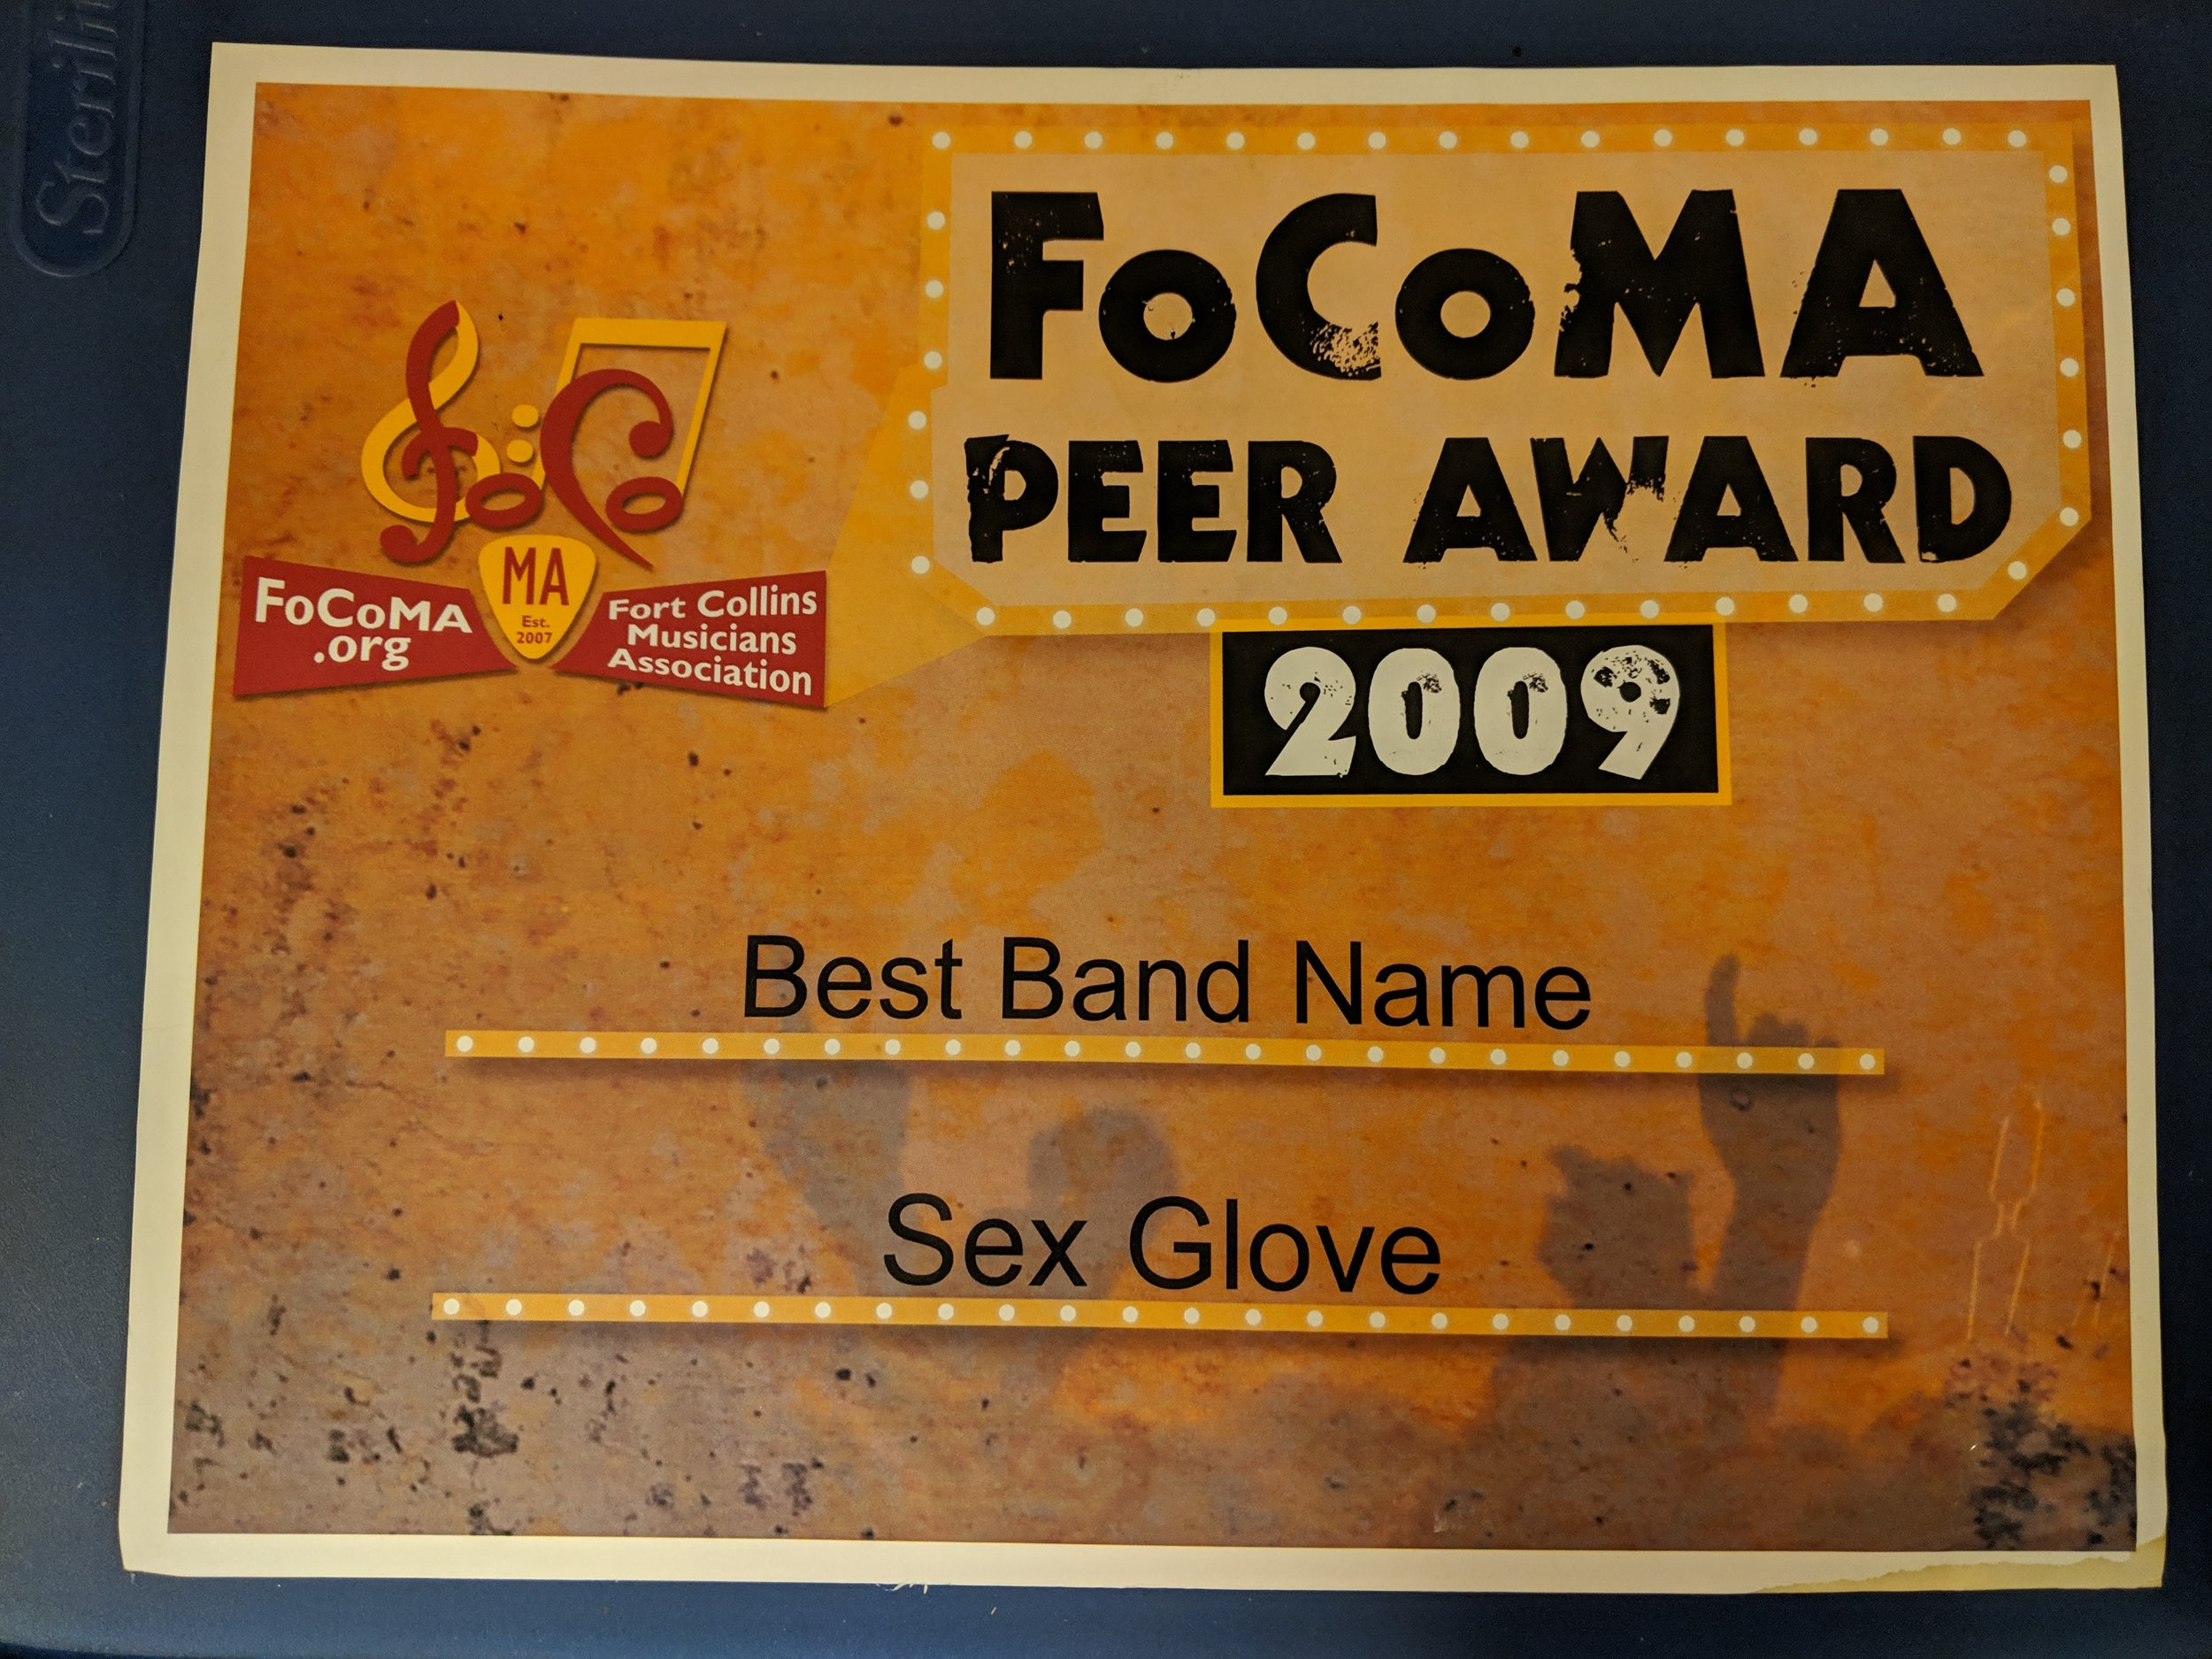 The award that is referenced. Just look at that logo.